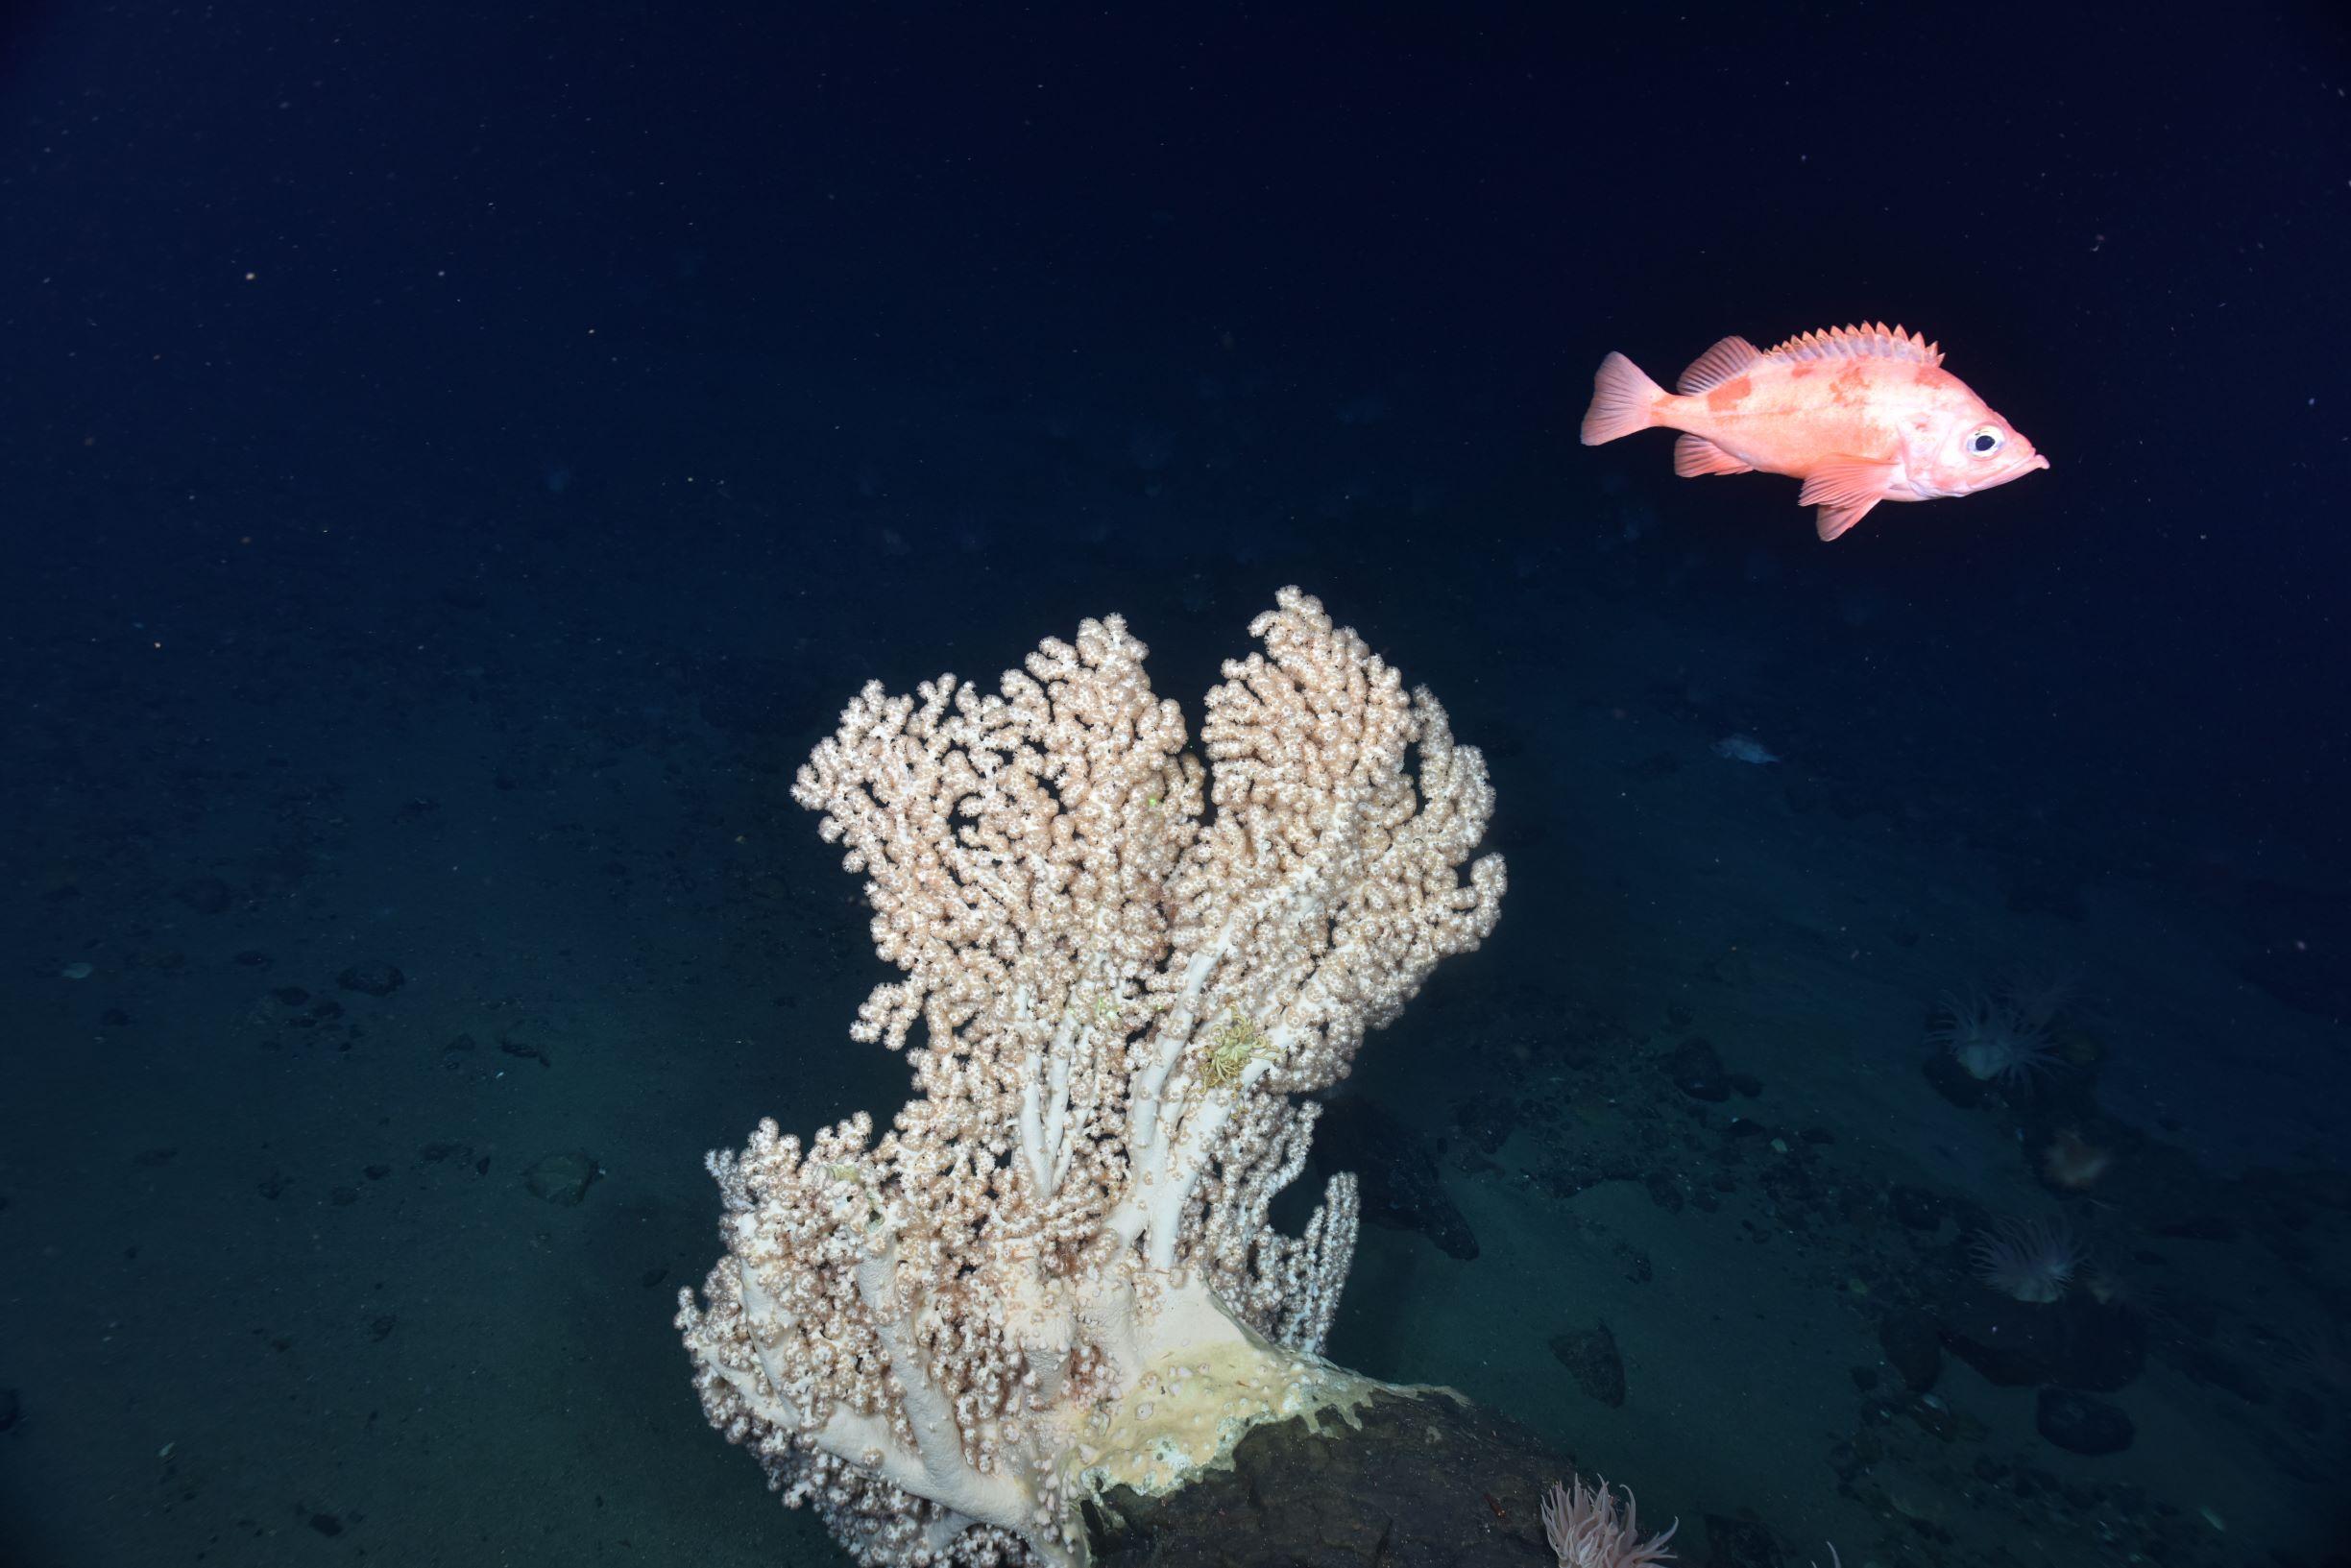 A redfish swims past Seacorn coral, Primnoa resedaeformis, in the Fundian Channel.